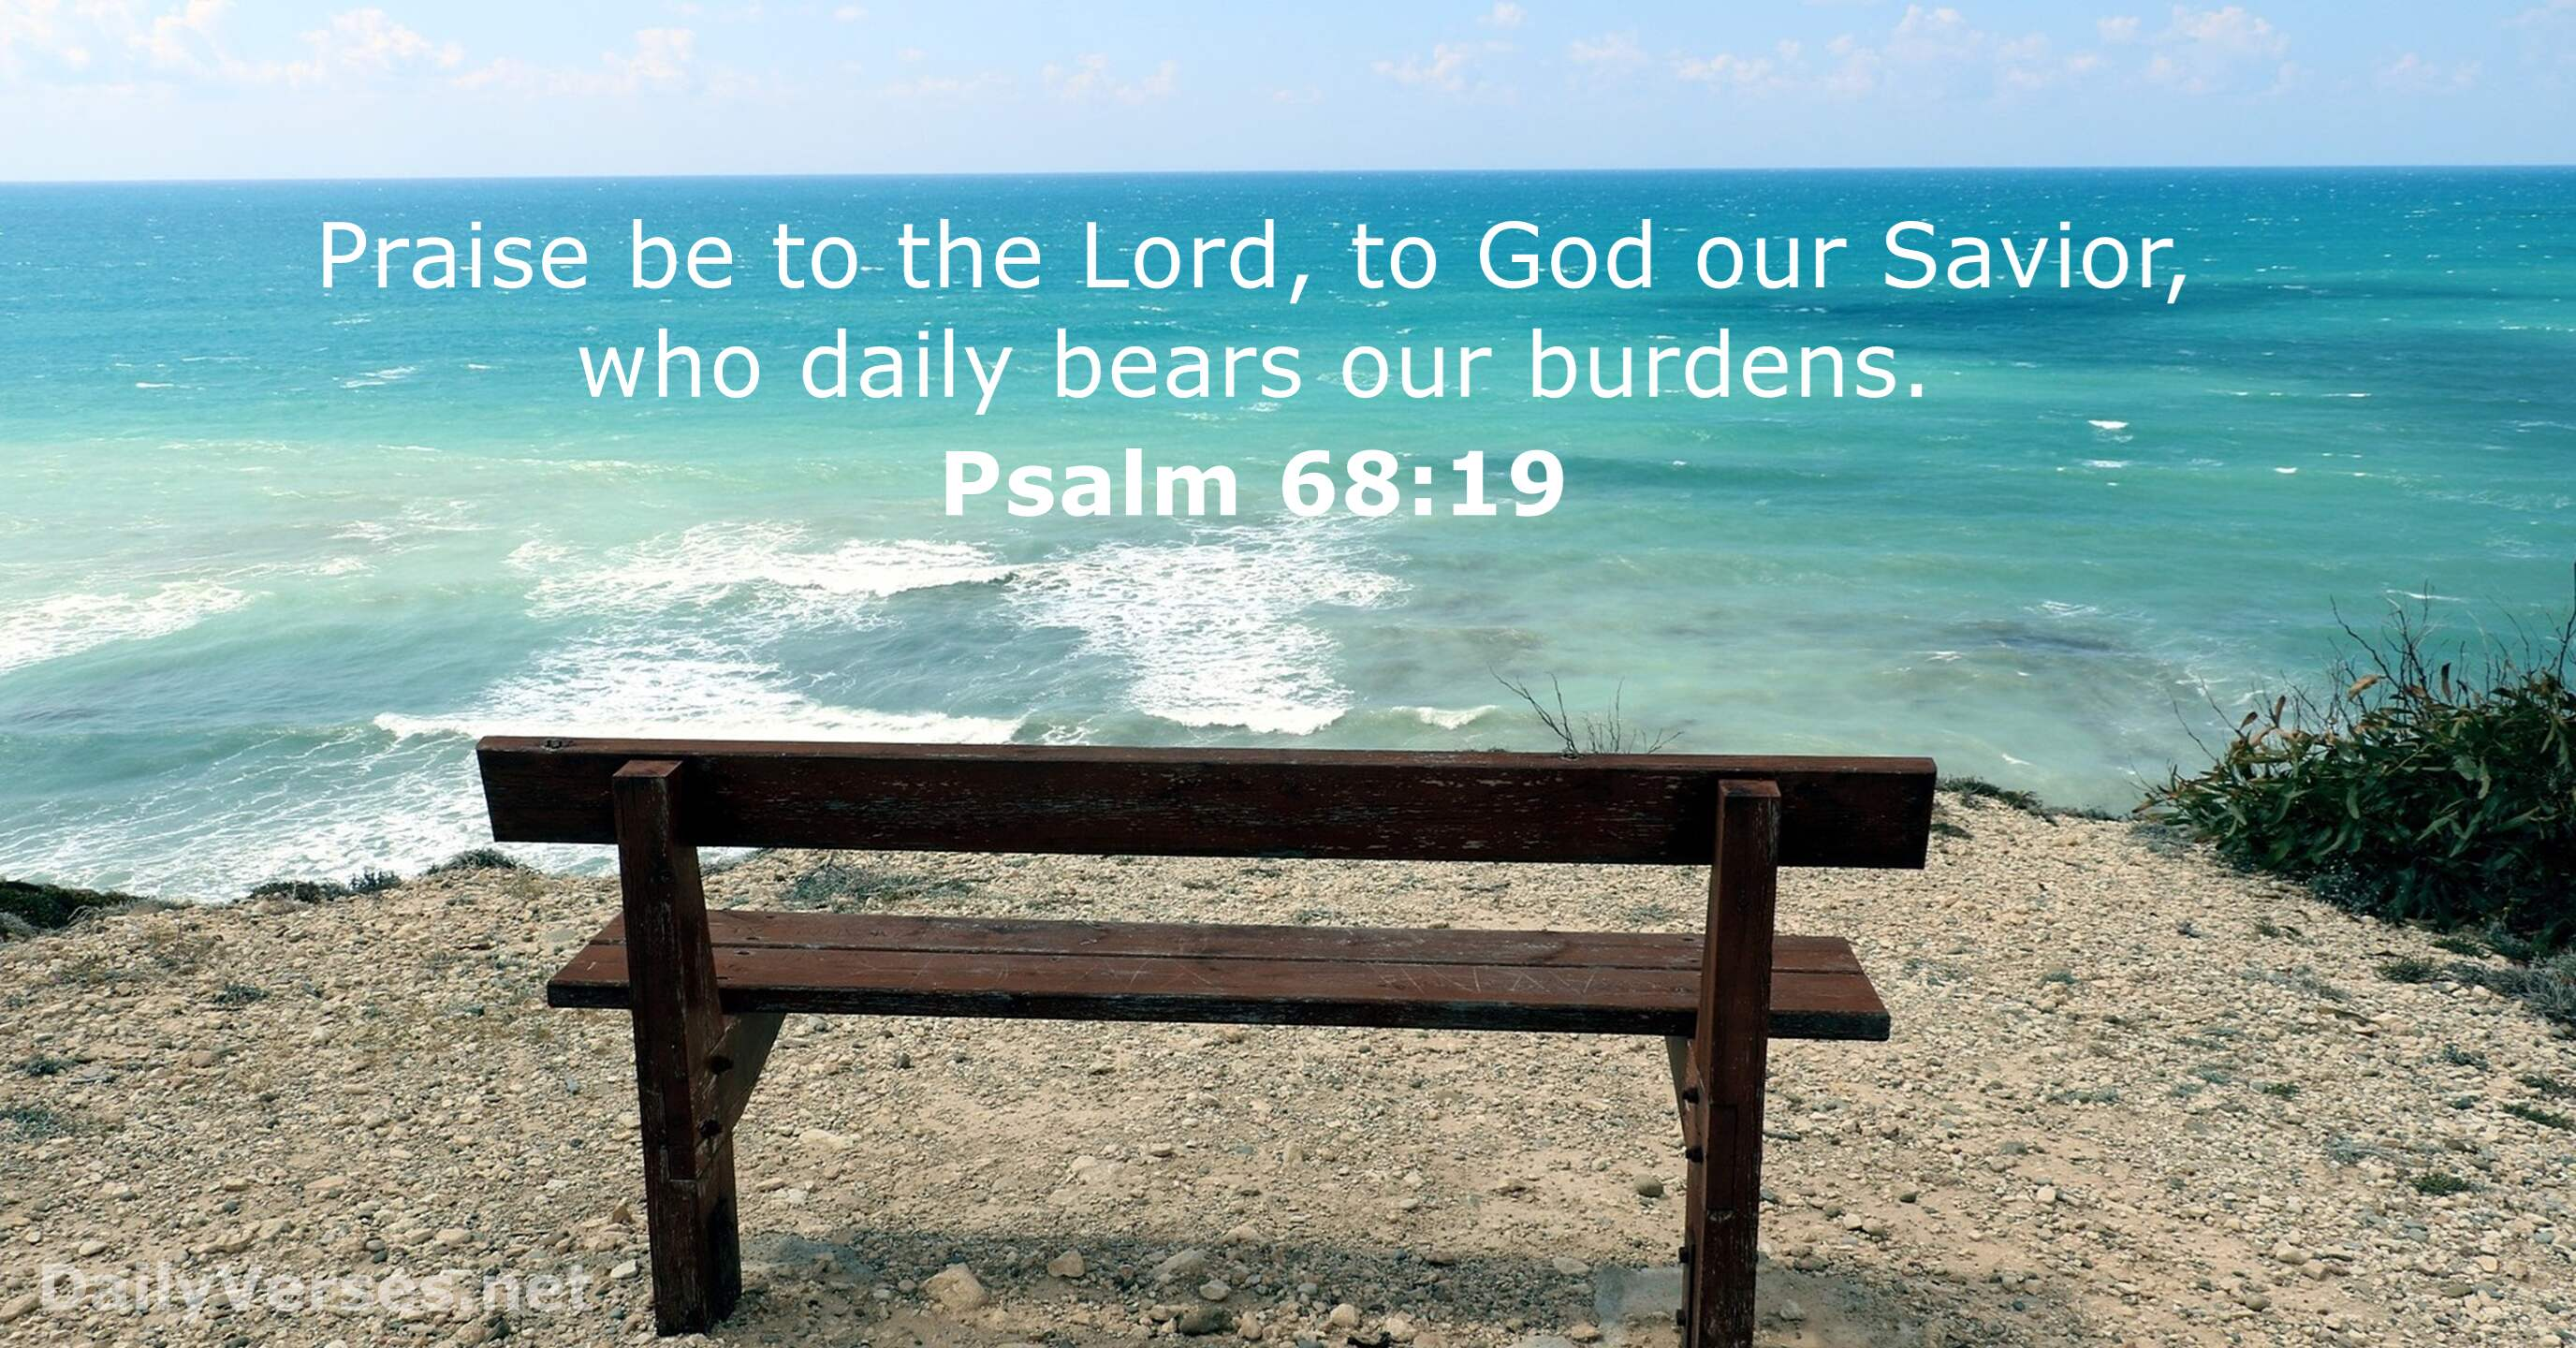 June 13, 2016 - Bible verse of the day - Psalm 68:19 - DailyVerses.net